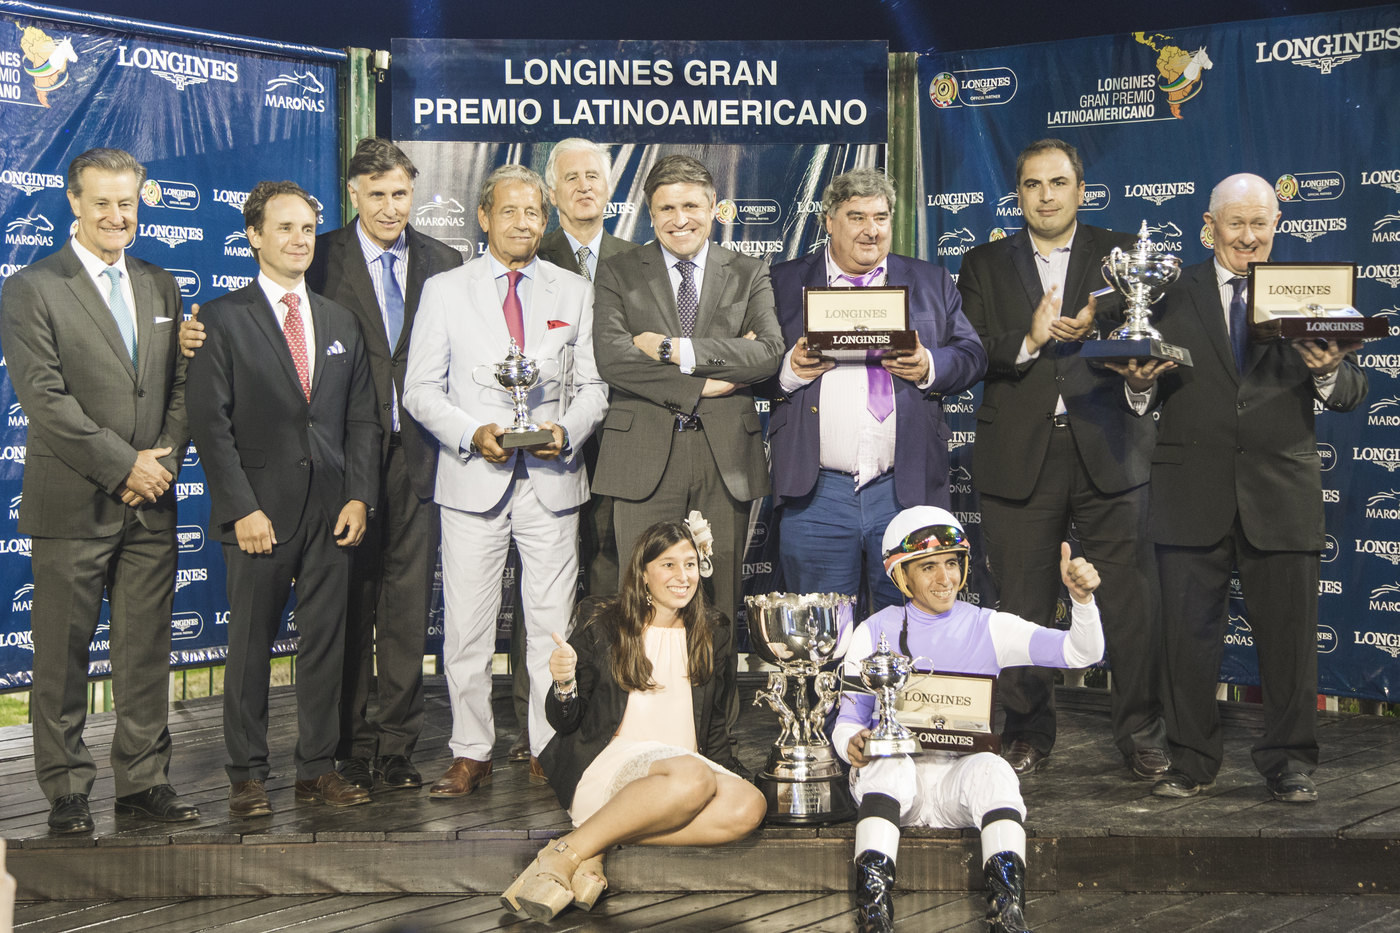 Longines Flat Racing Event: Roman Rosso and Wilson Moreyra claimed victory at the 2018 Longines Gran Premio Latinoamericano  2